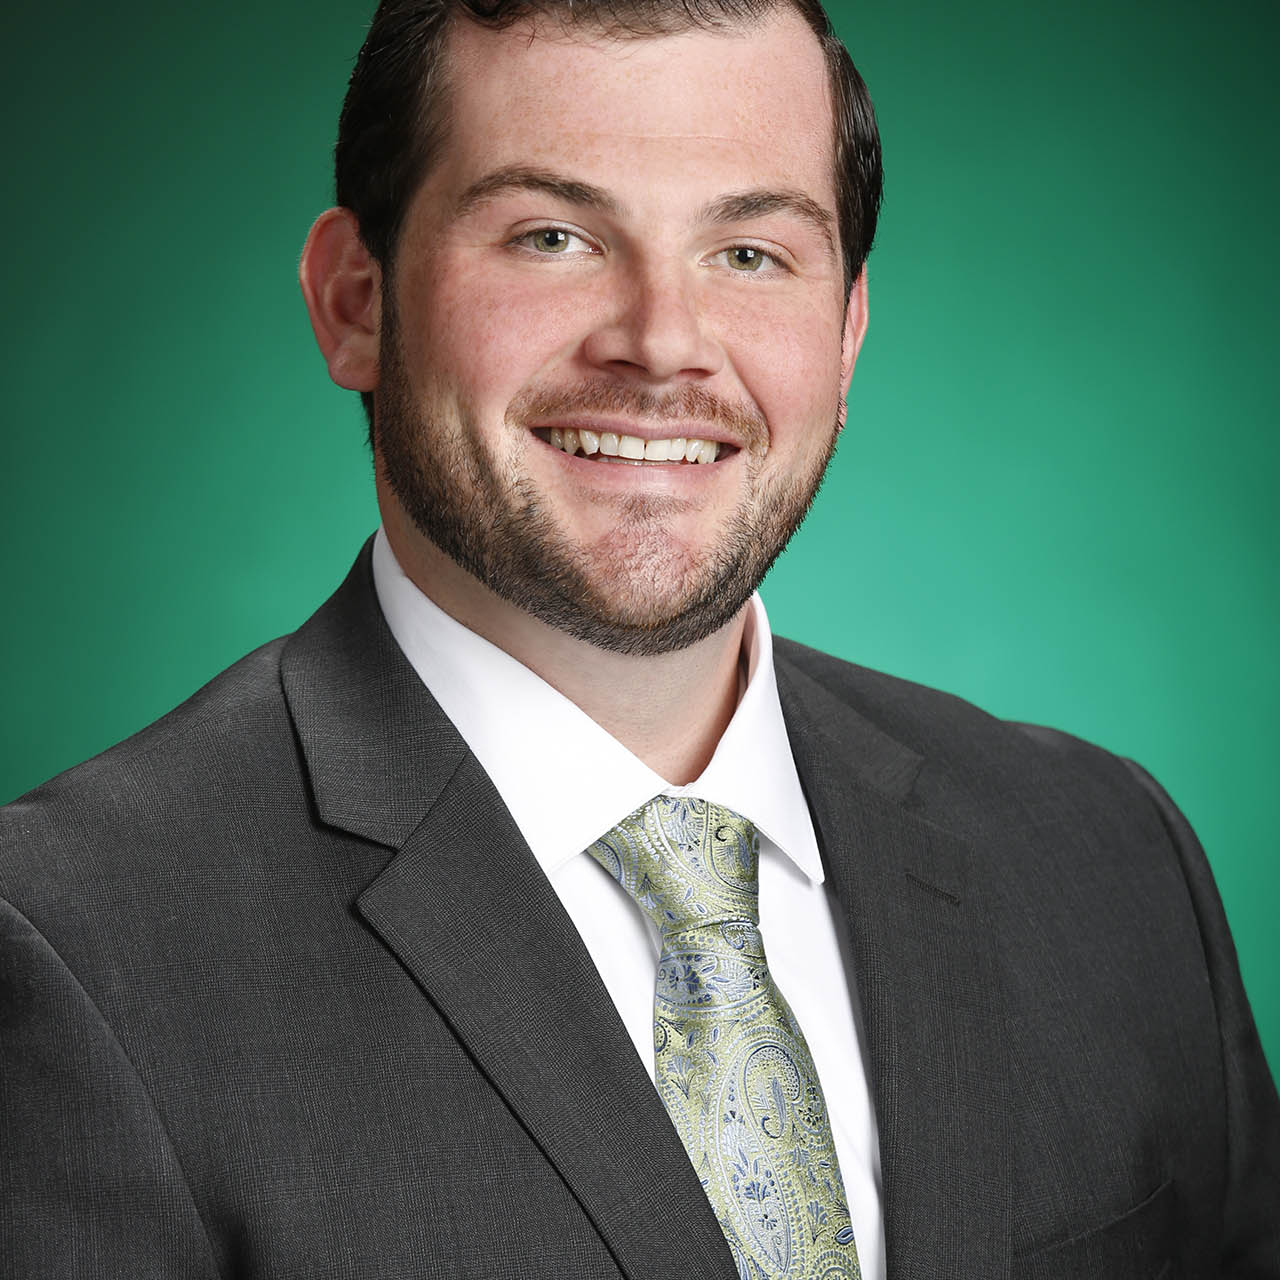 Davin J Carey's advisor photo